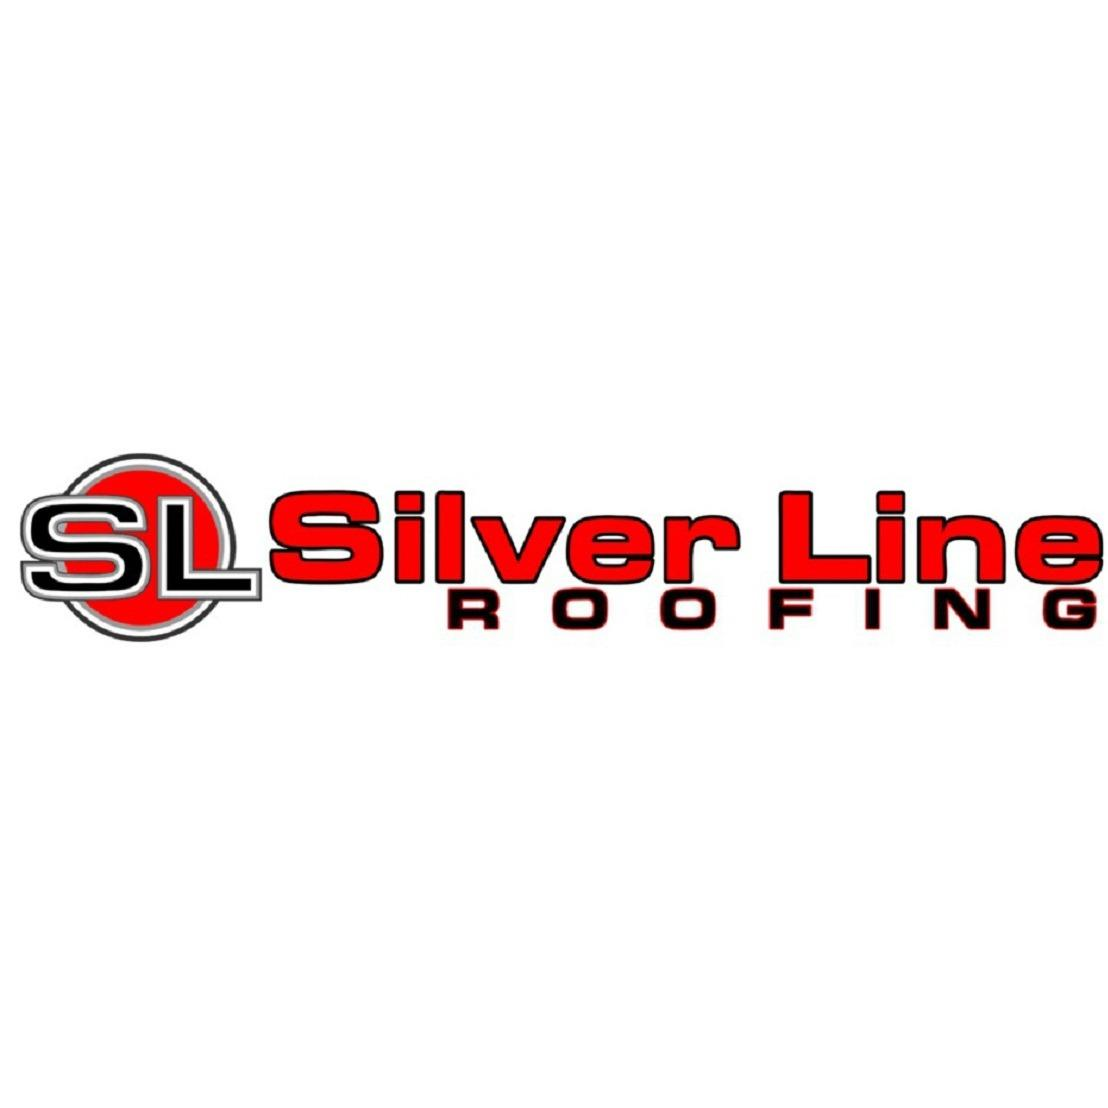 Silver Line Roofing LLC